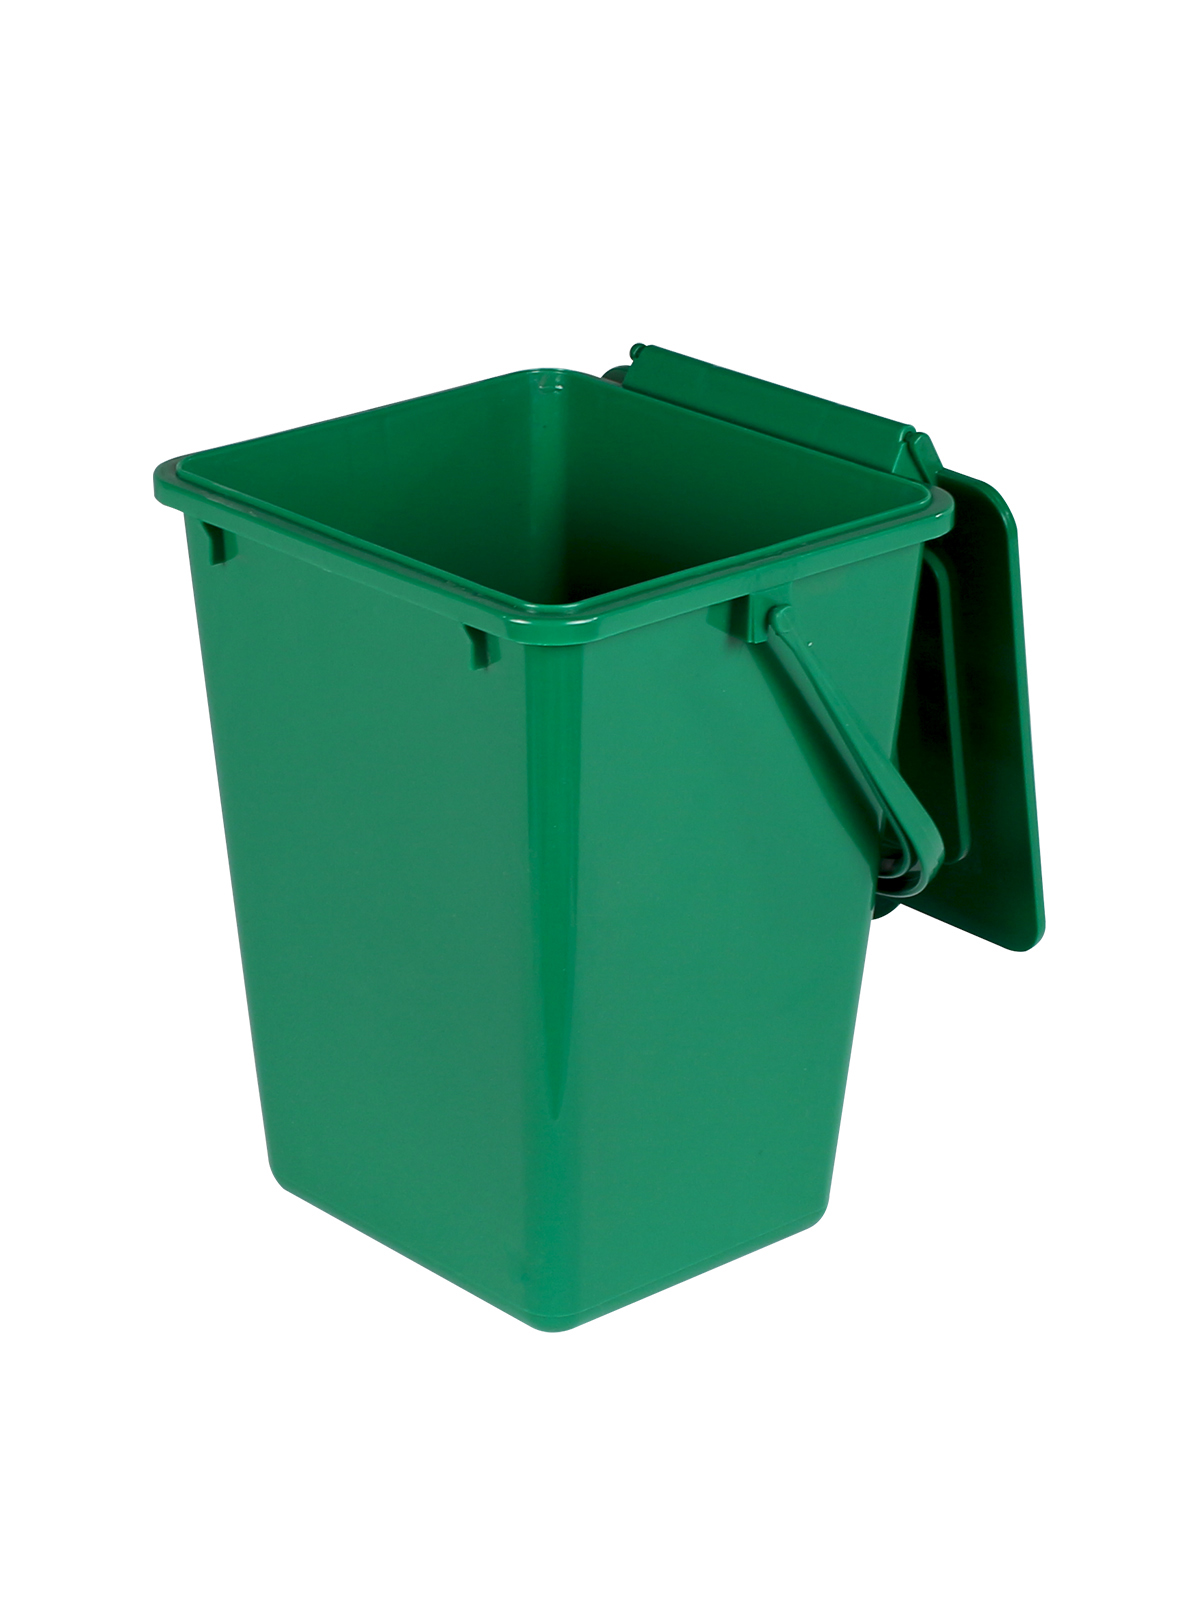 KITCHEN COMPOSTER - Single - Unit - 2 - Solid Lift - Compost Green